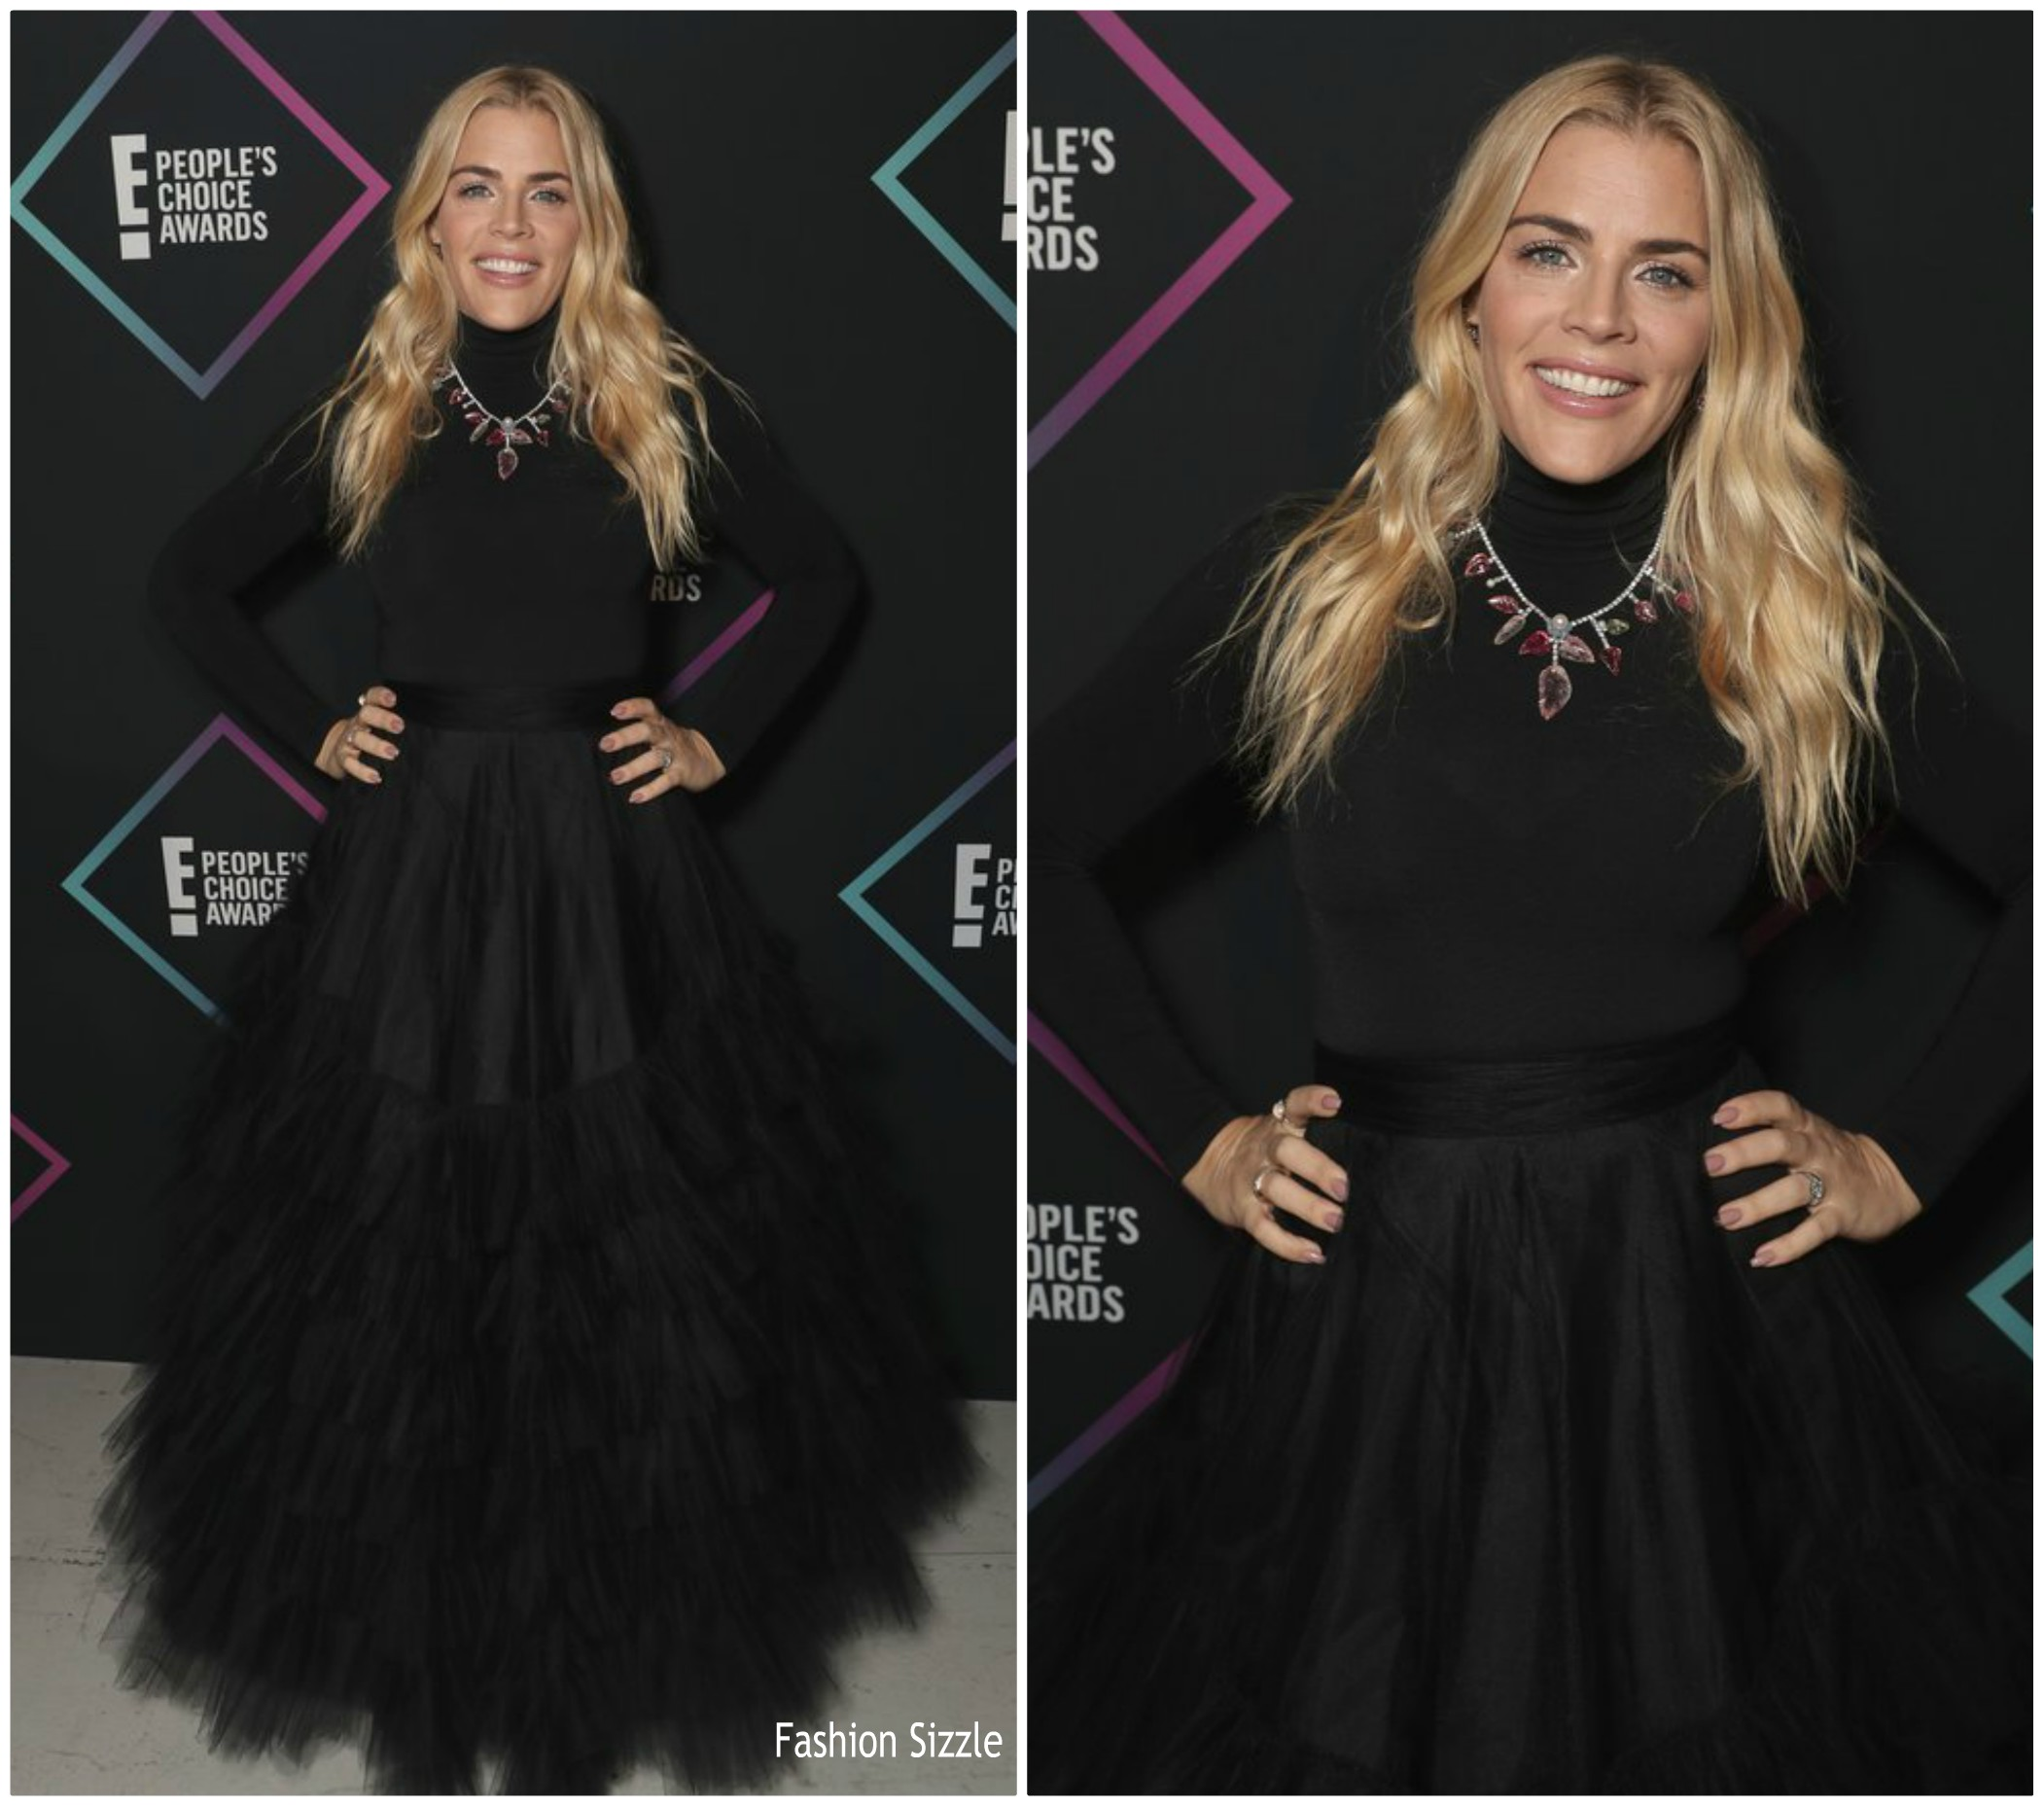 busy-philipps-in-chriatian-siriano-2018-e-peoples-choice-awards